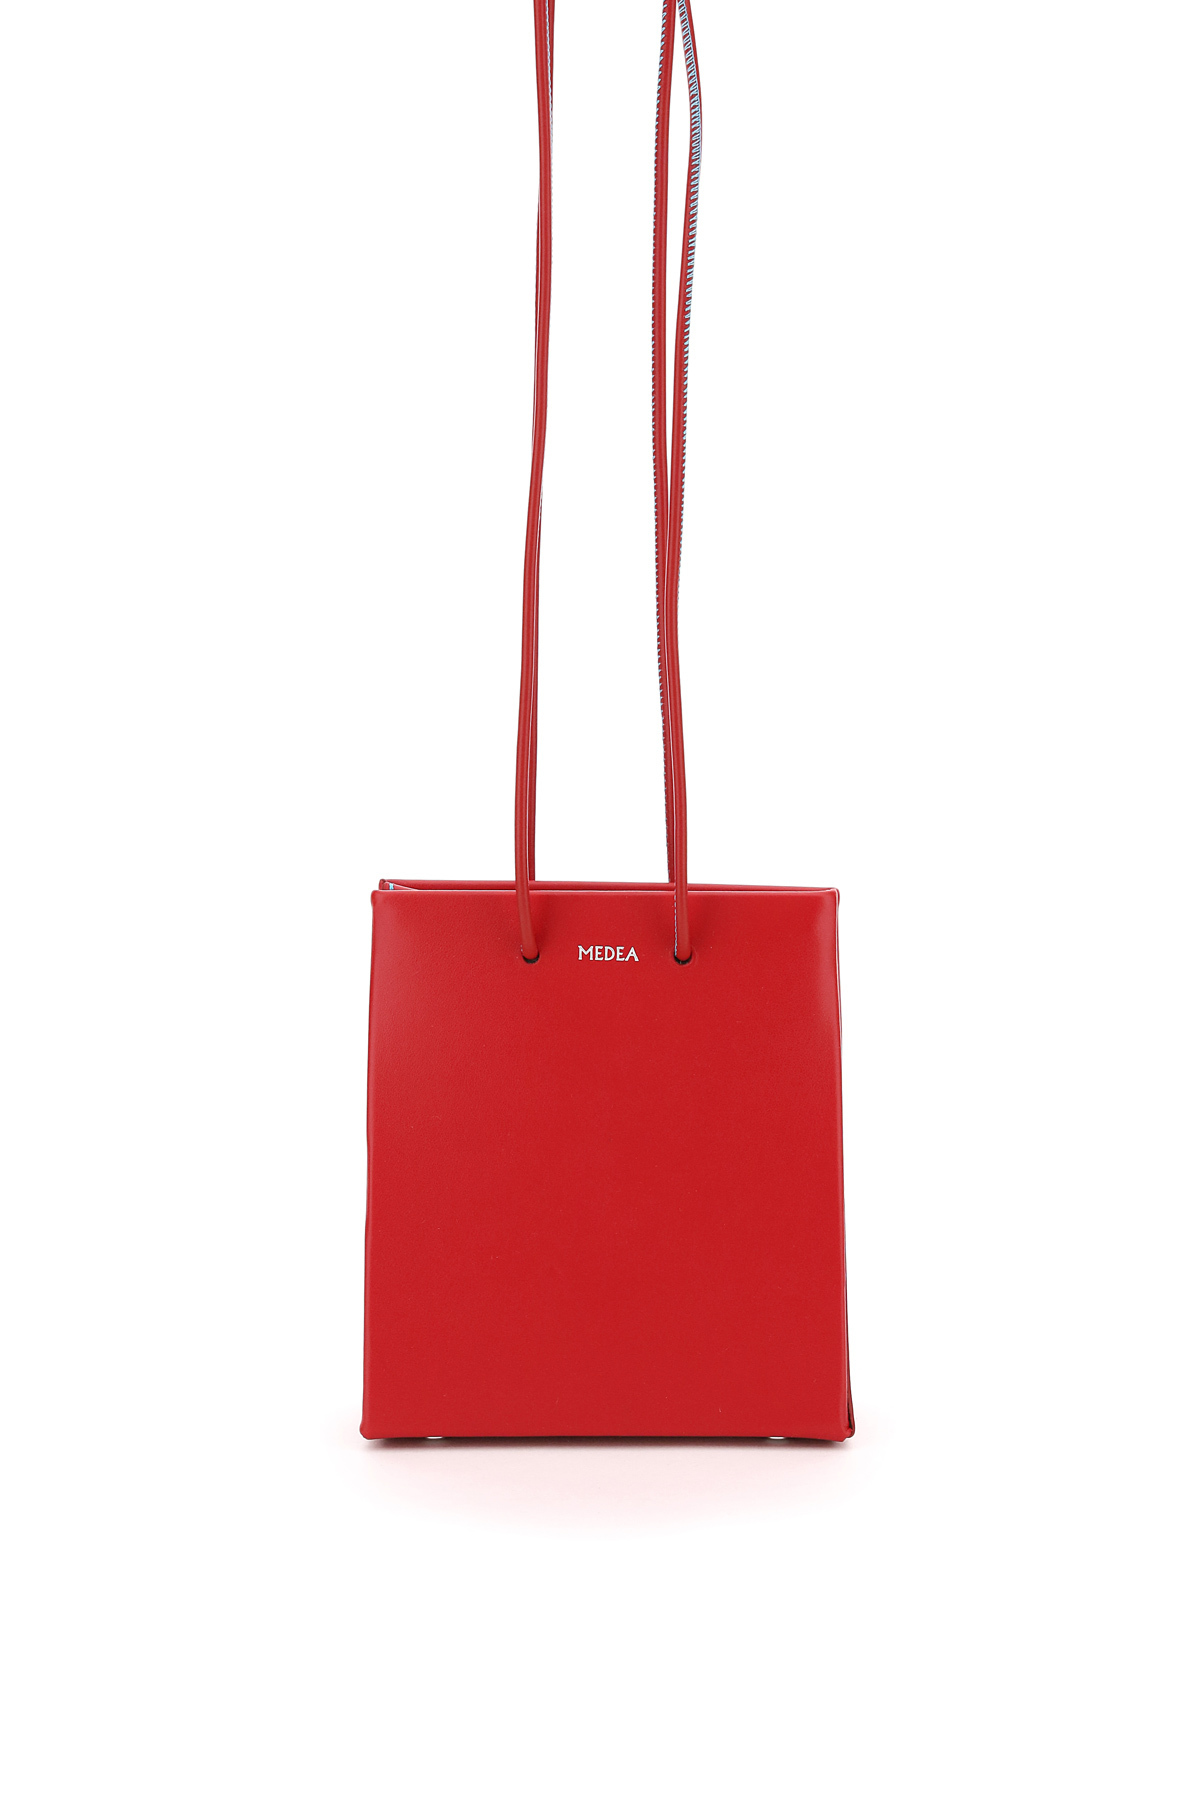 MEDEA LONGSTRAP MEDEA PRIMA BAG LEATHER SHOPPER OS Red Leather